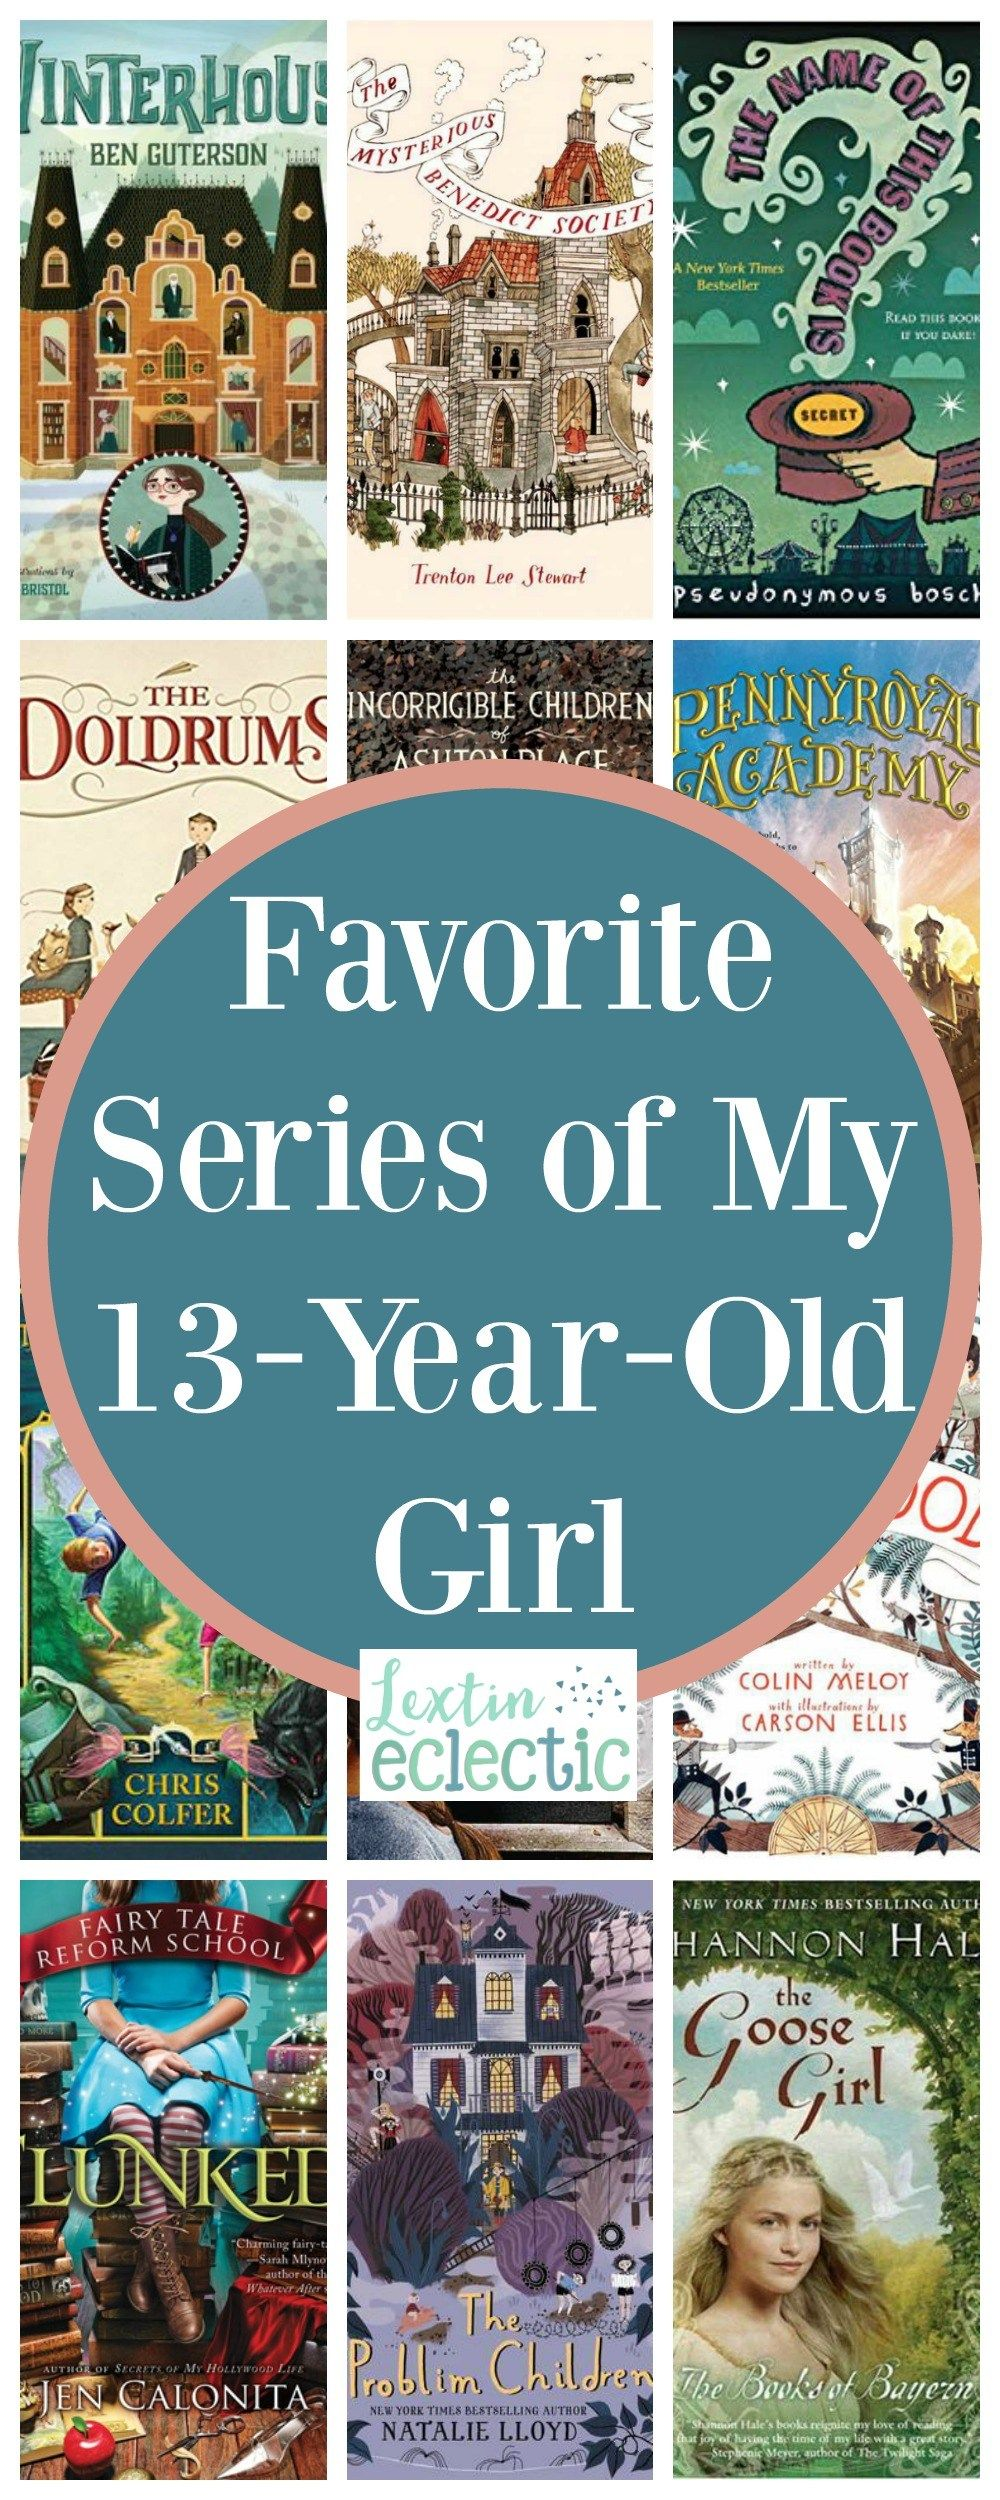 Favorite Series Of My 13 Year Old Girl Lextin Eclectic In 2020 Books For Teens Books Literature Books